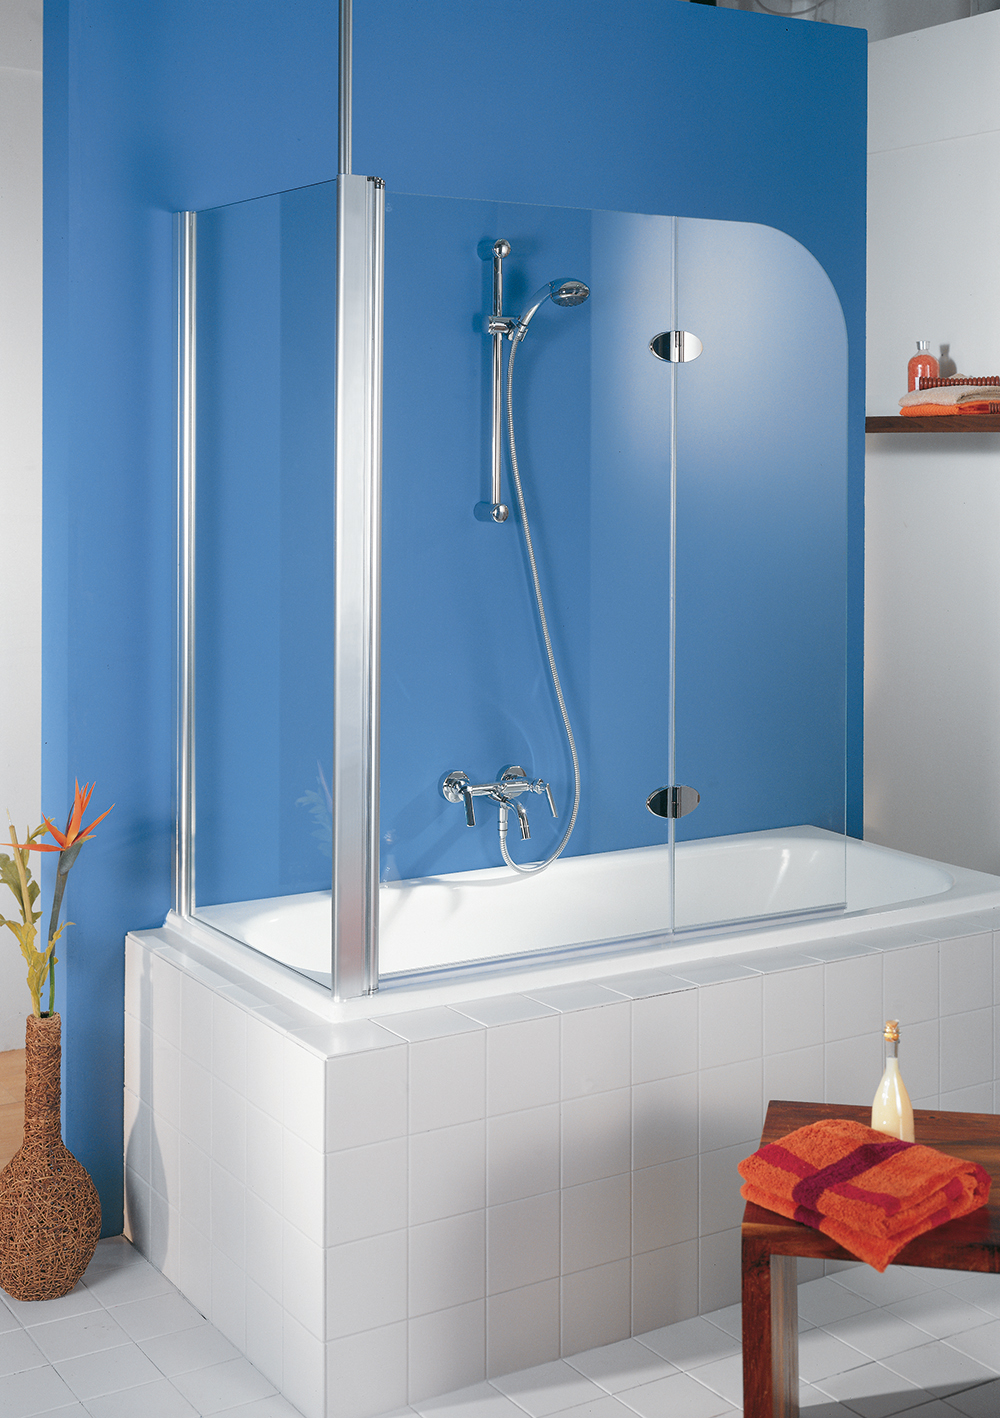 HSK Showers KG | Exclusiv, 2 piece with side panel